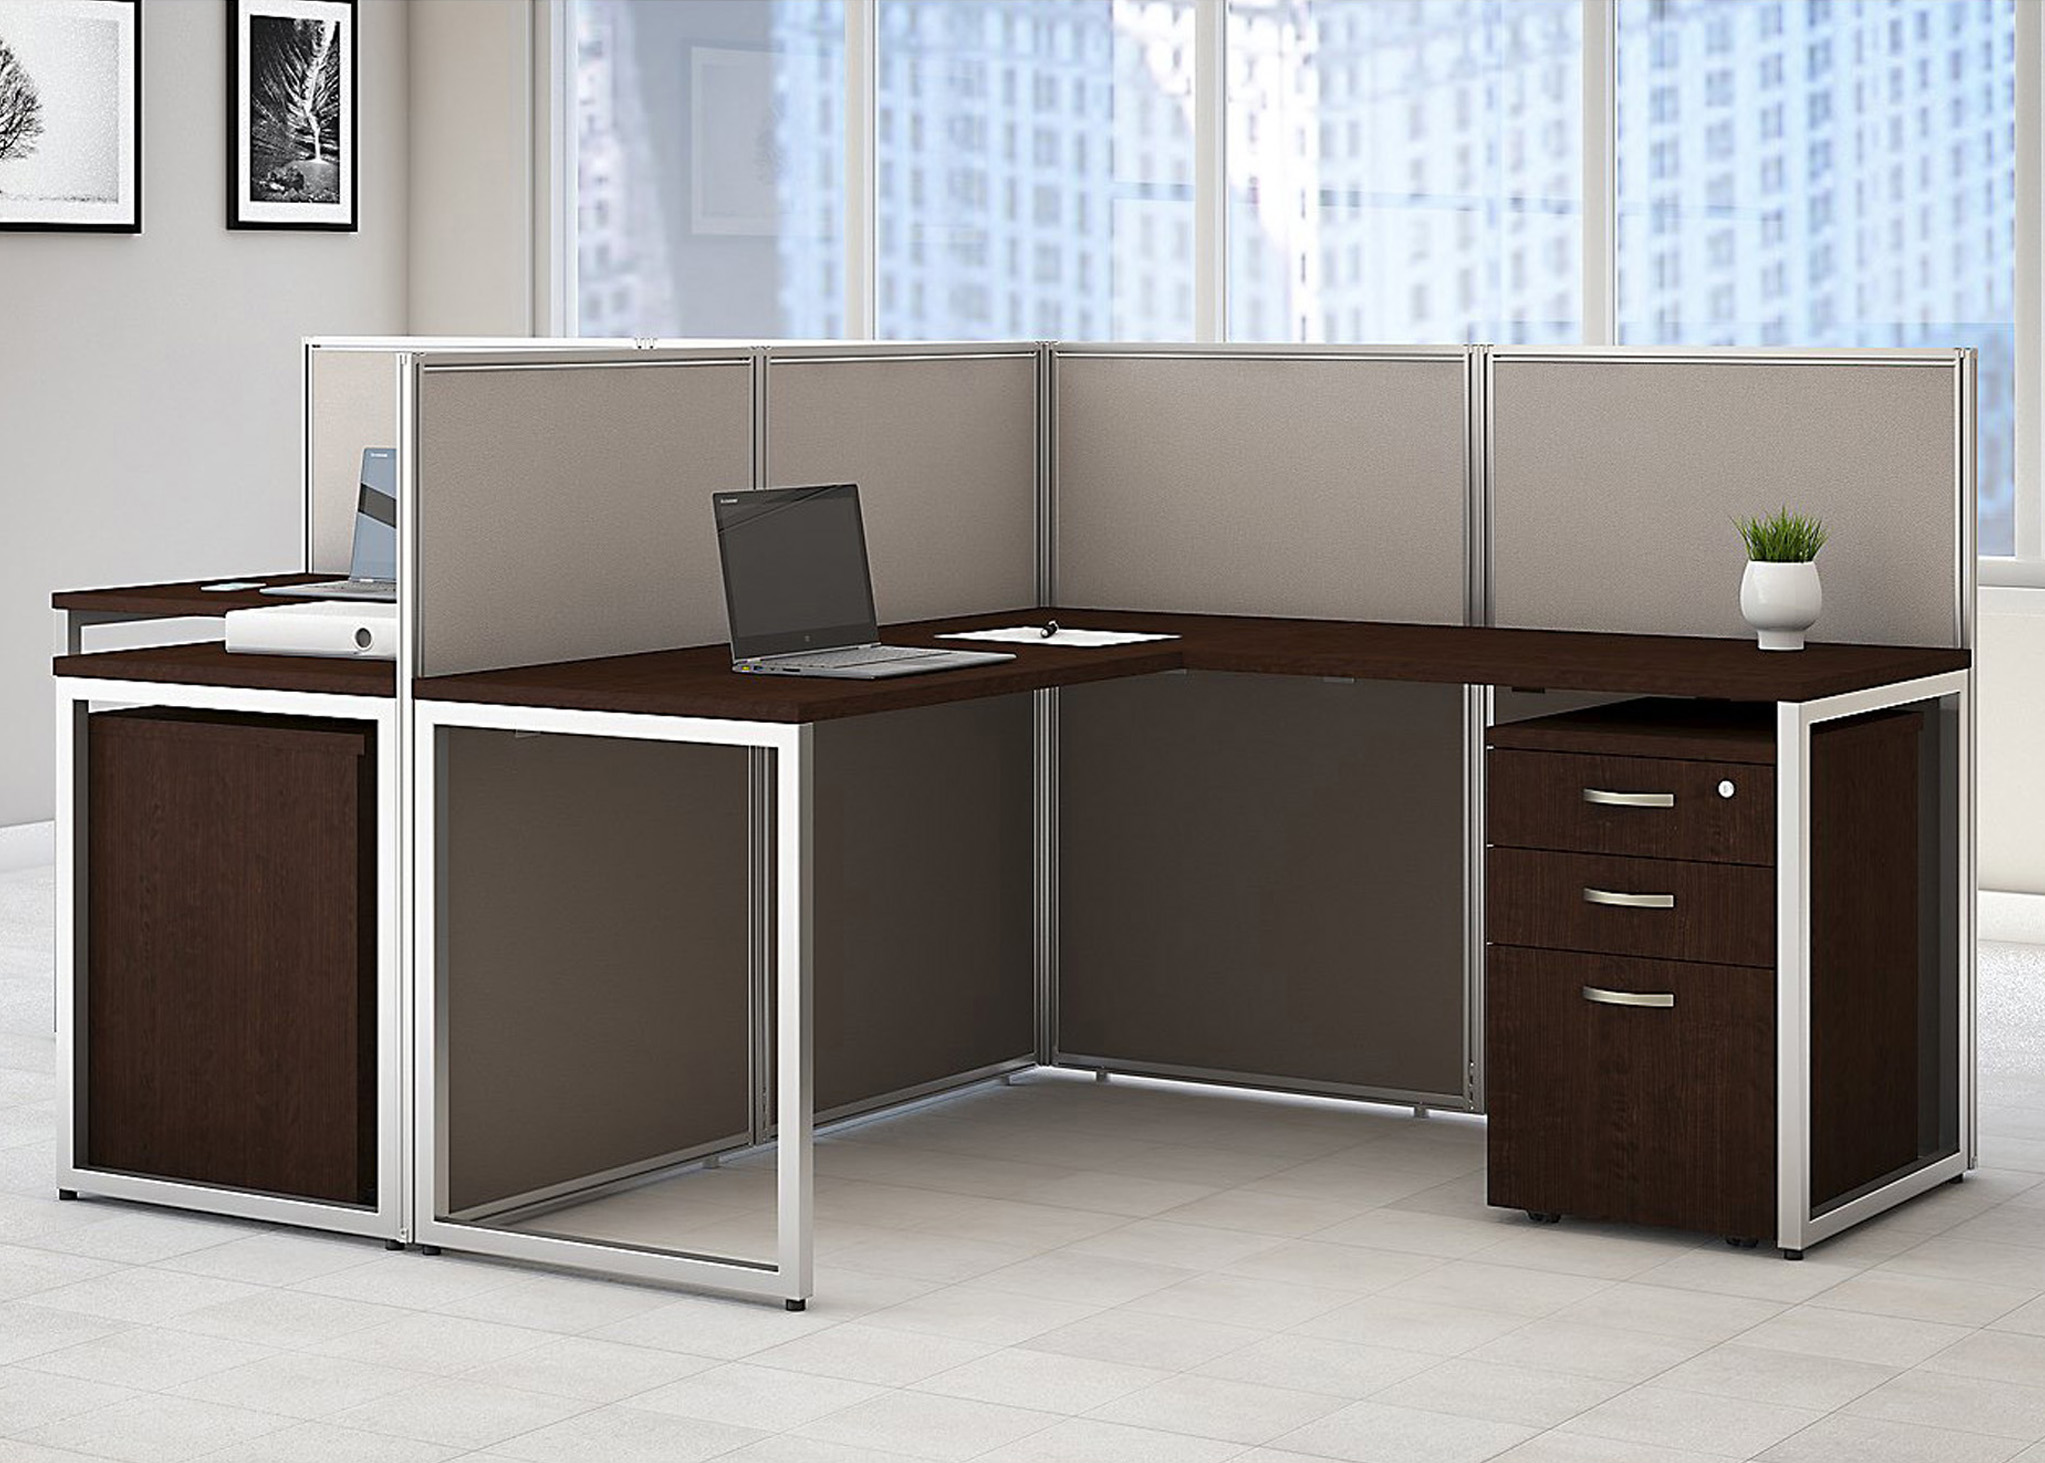 workstation desks office cubes cubicle desk